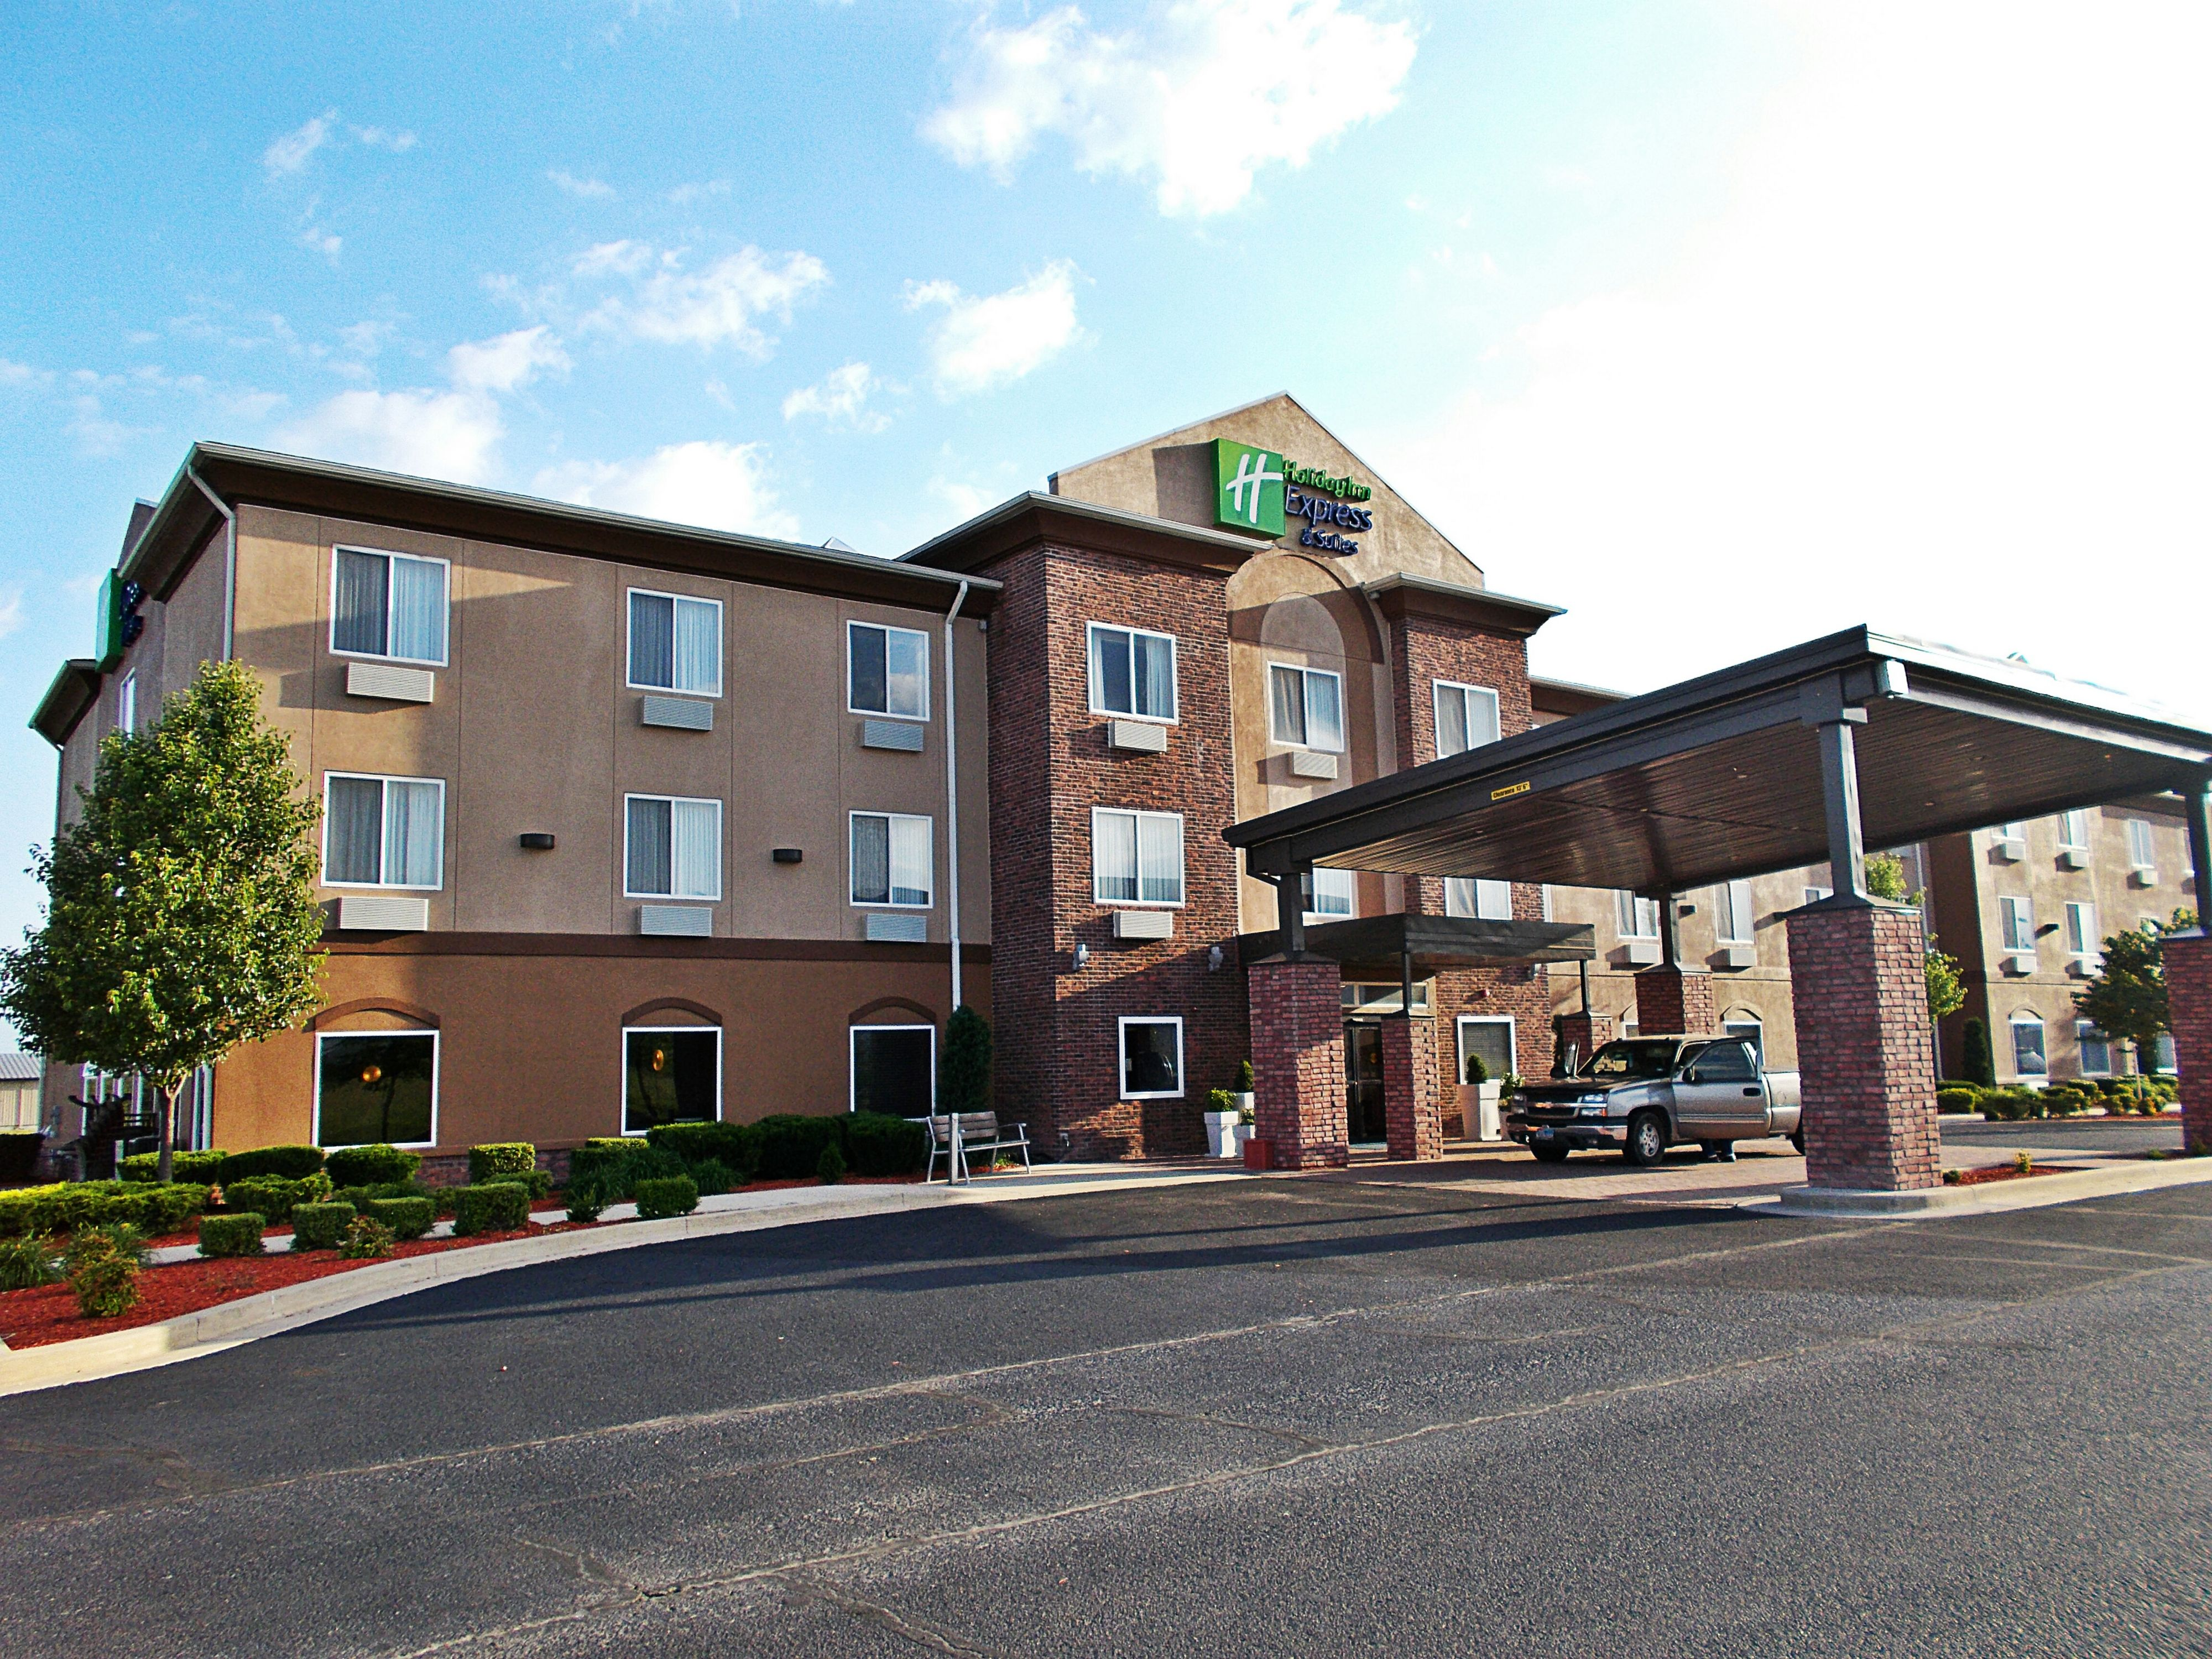 Holiday Inn Express & Suites Mesquite image 5